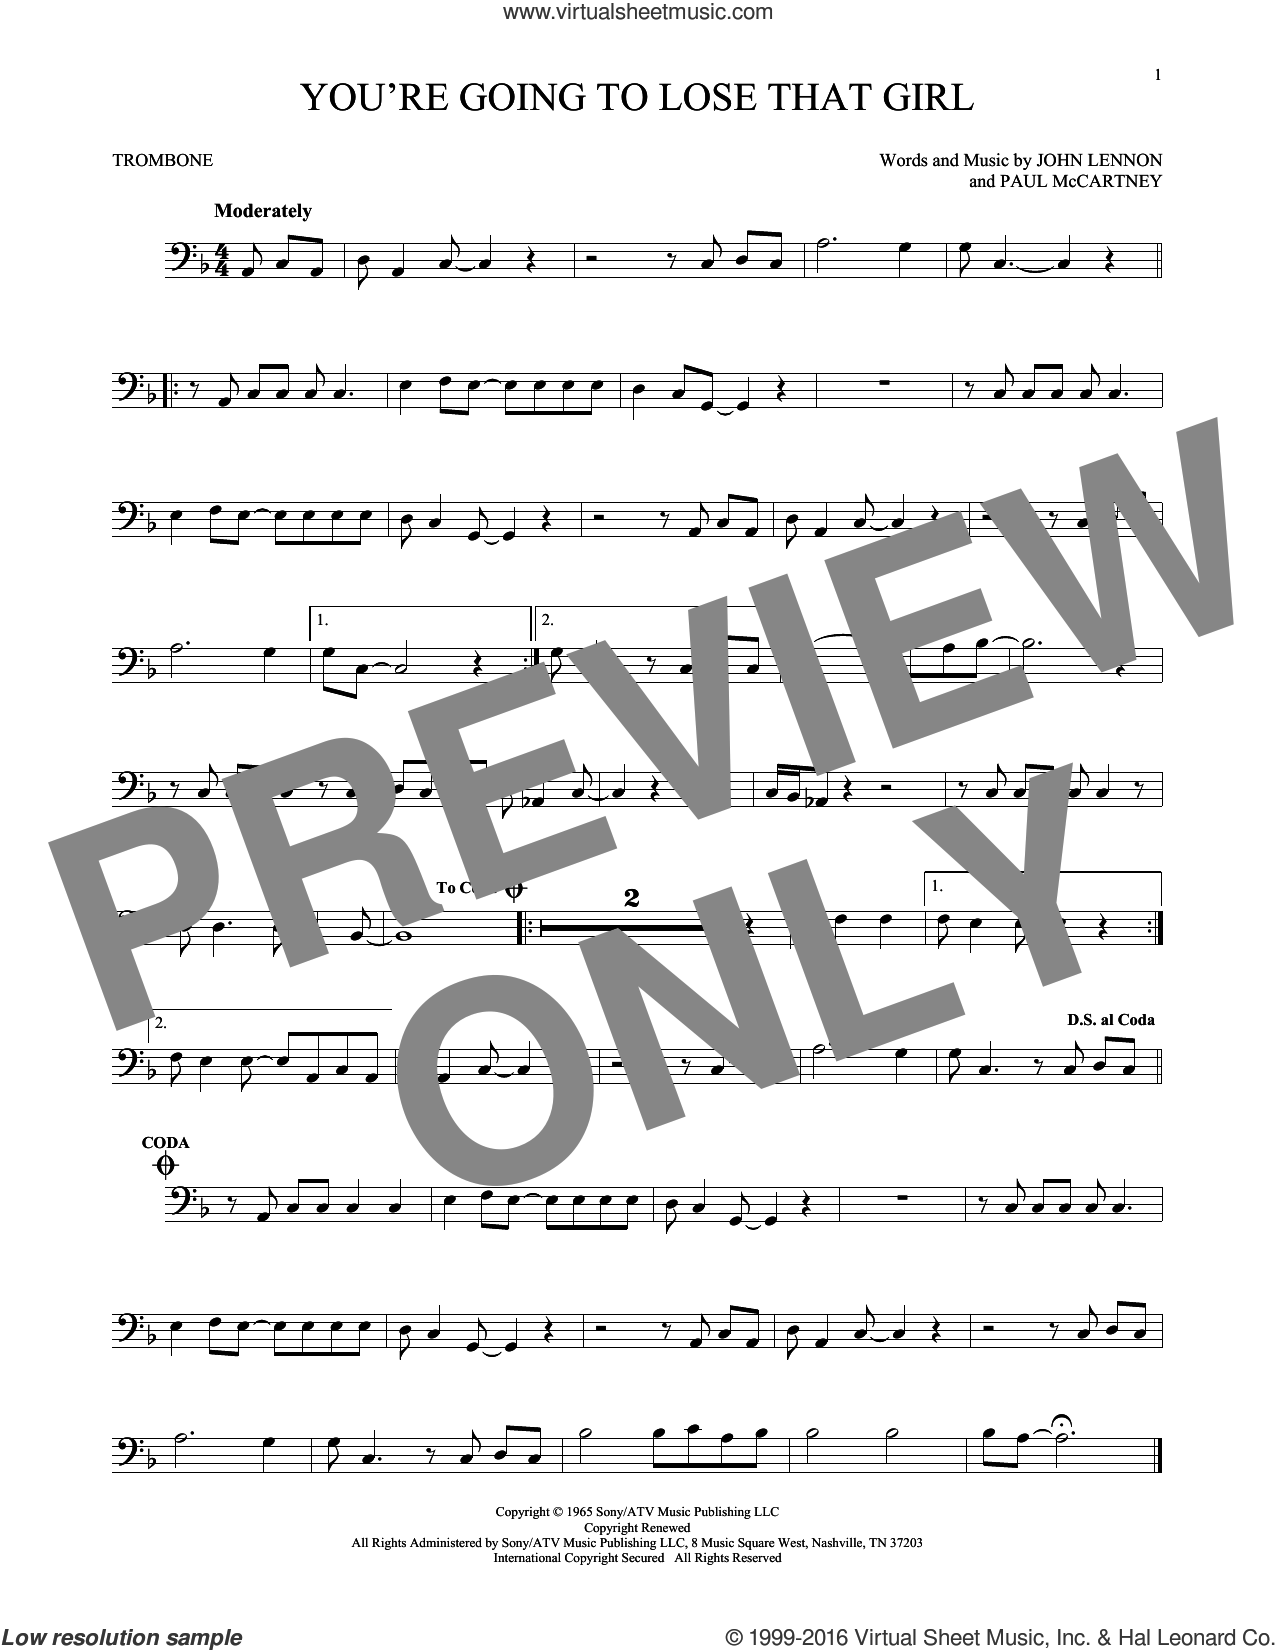 You're Going To Lose That Girl sheet music for trombone solo by Paul McCartney, The Beatles and John Lennon. Score Image Preview.